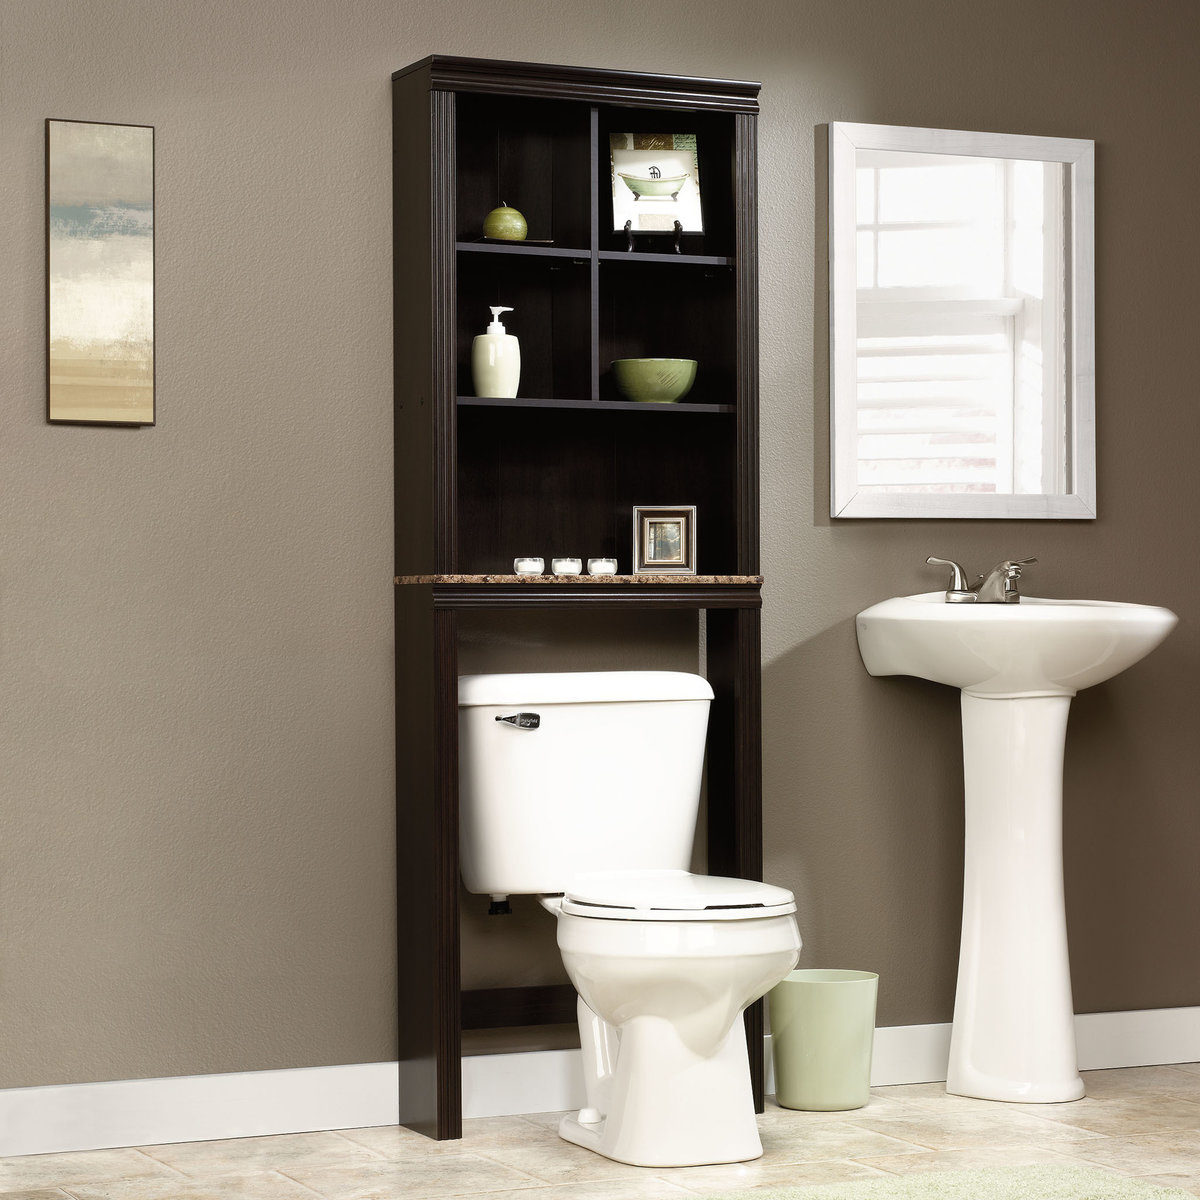 white wooden tower bathroom shelves cabinet with glass do